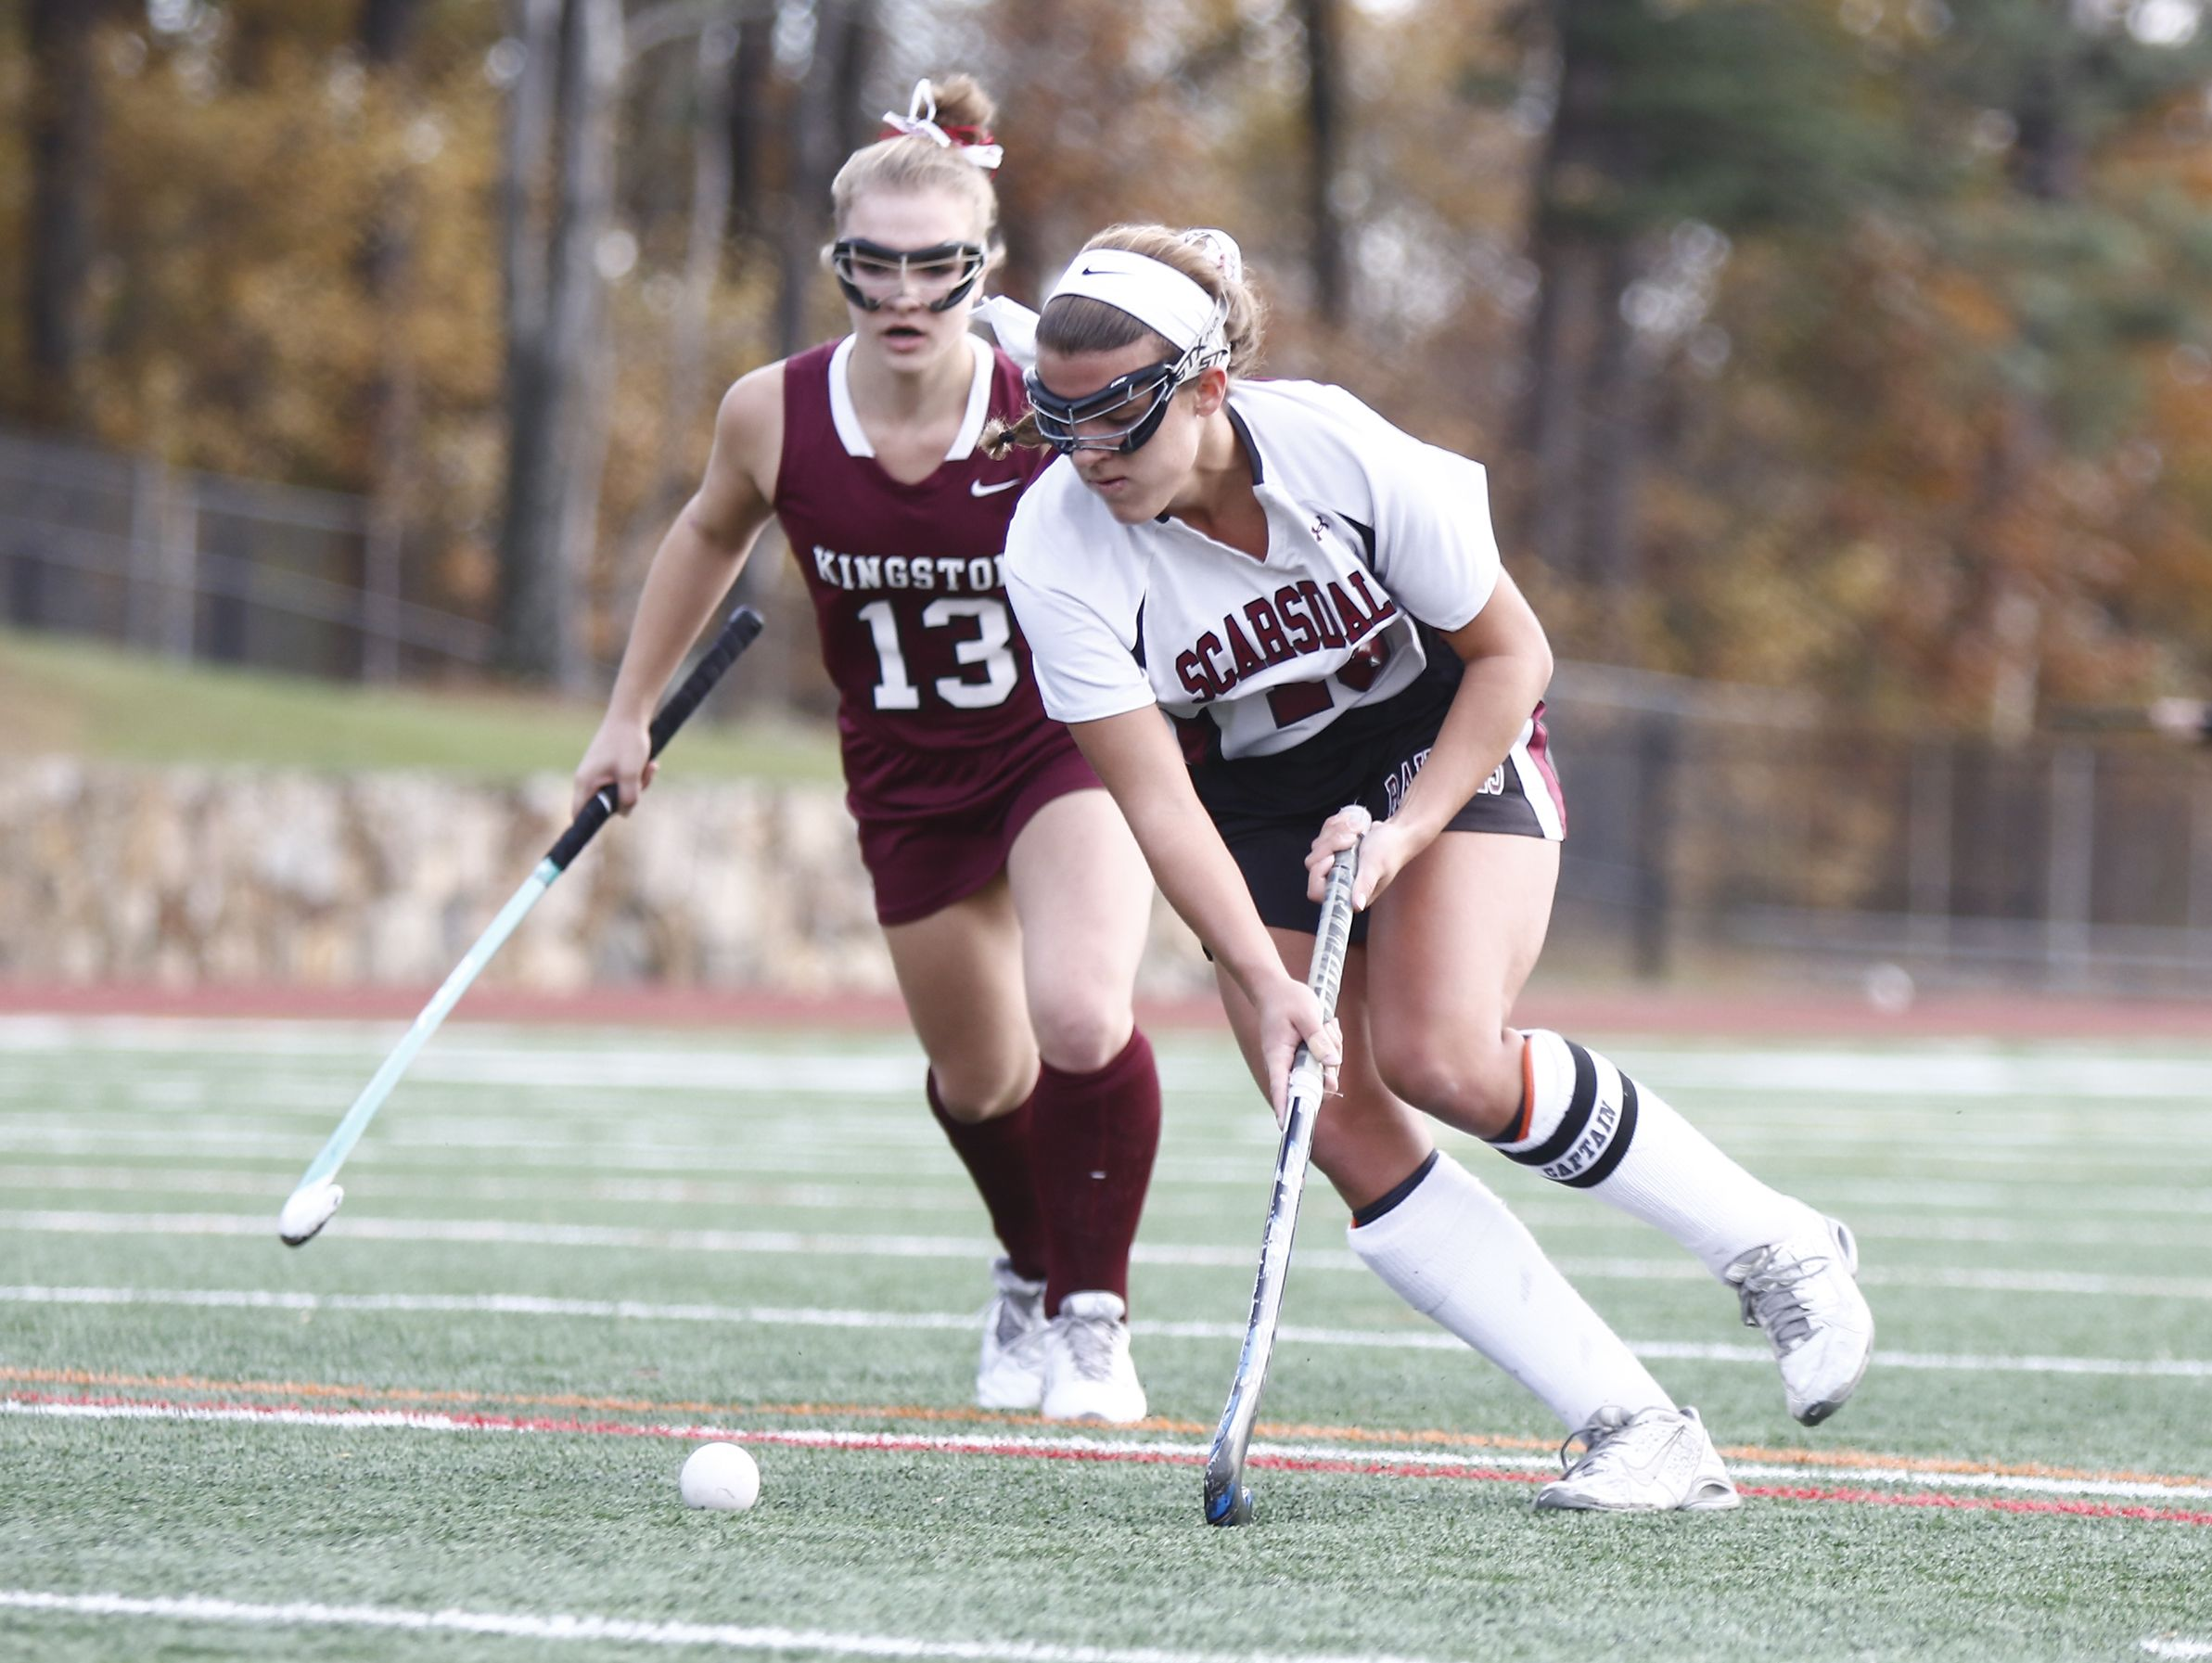 Scarsdale's Erin Nicholas (16) works past a Kingston's Juliana Sickler (3) during their 5-0 win in the Class A regional championship field hockey game at Valhalla High School on Saturday, November 5, 2016.